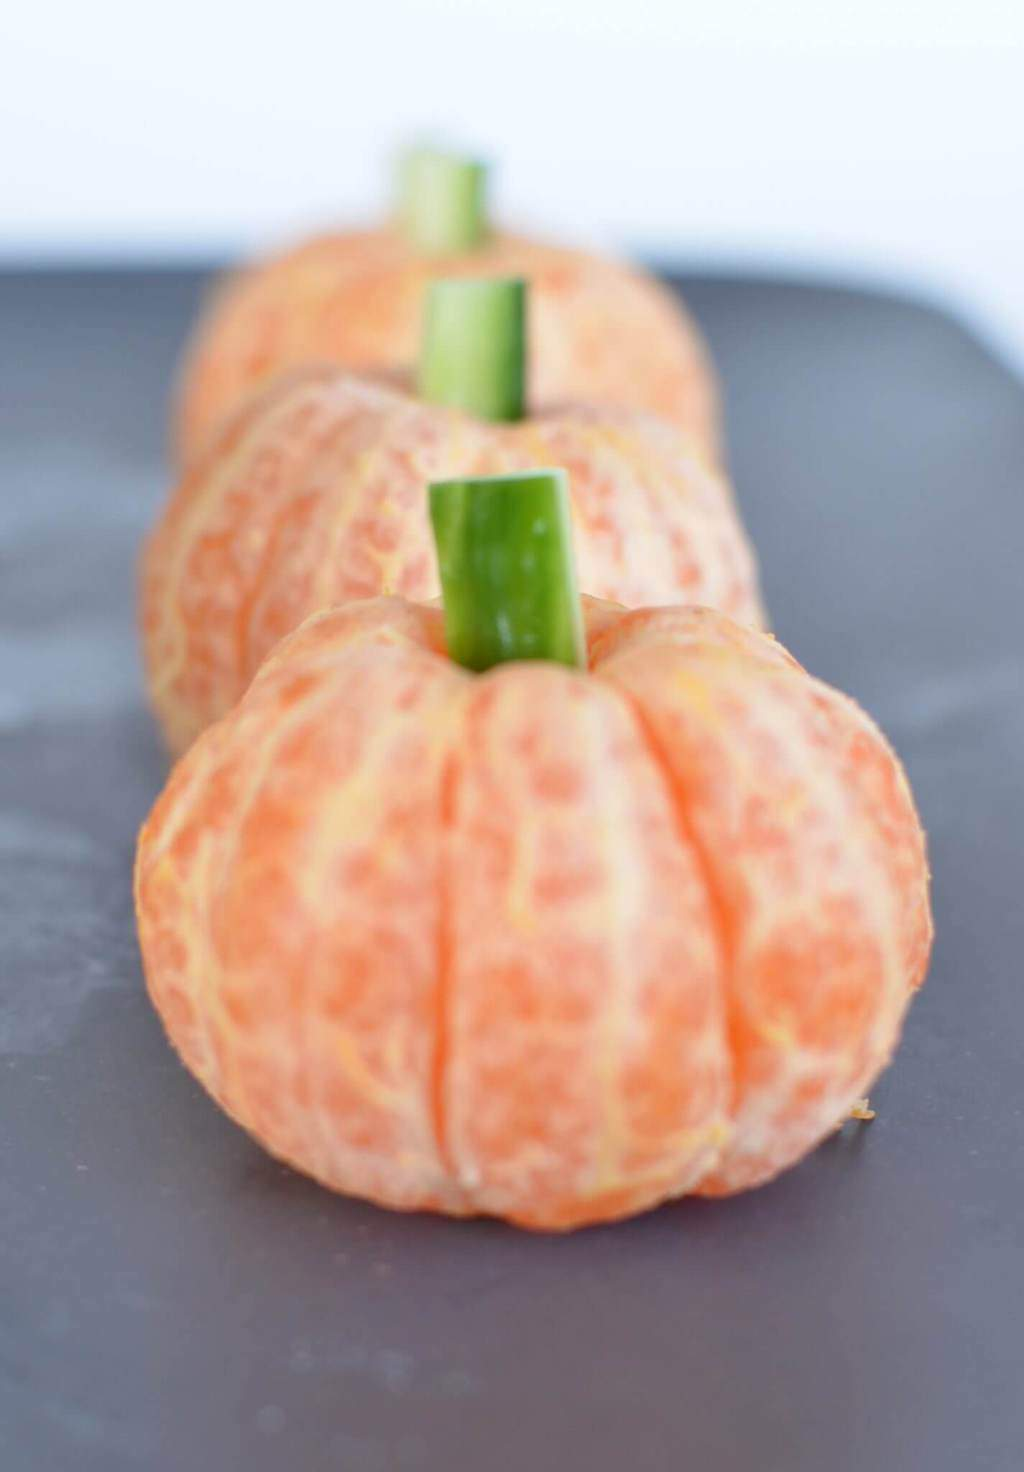 Healthy halloween treats with fun pumpkins made from mandarins